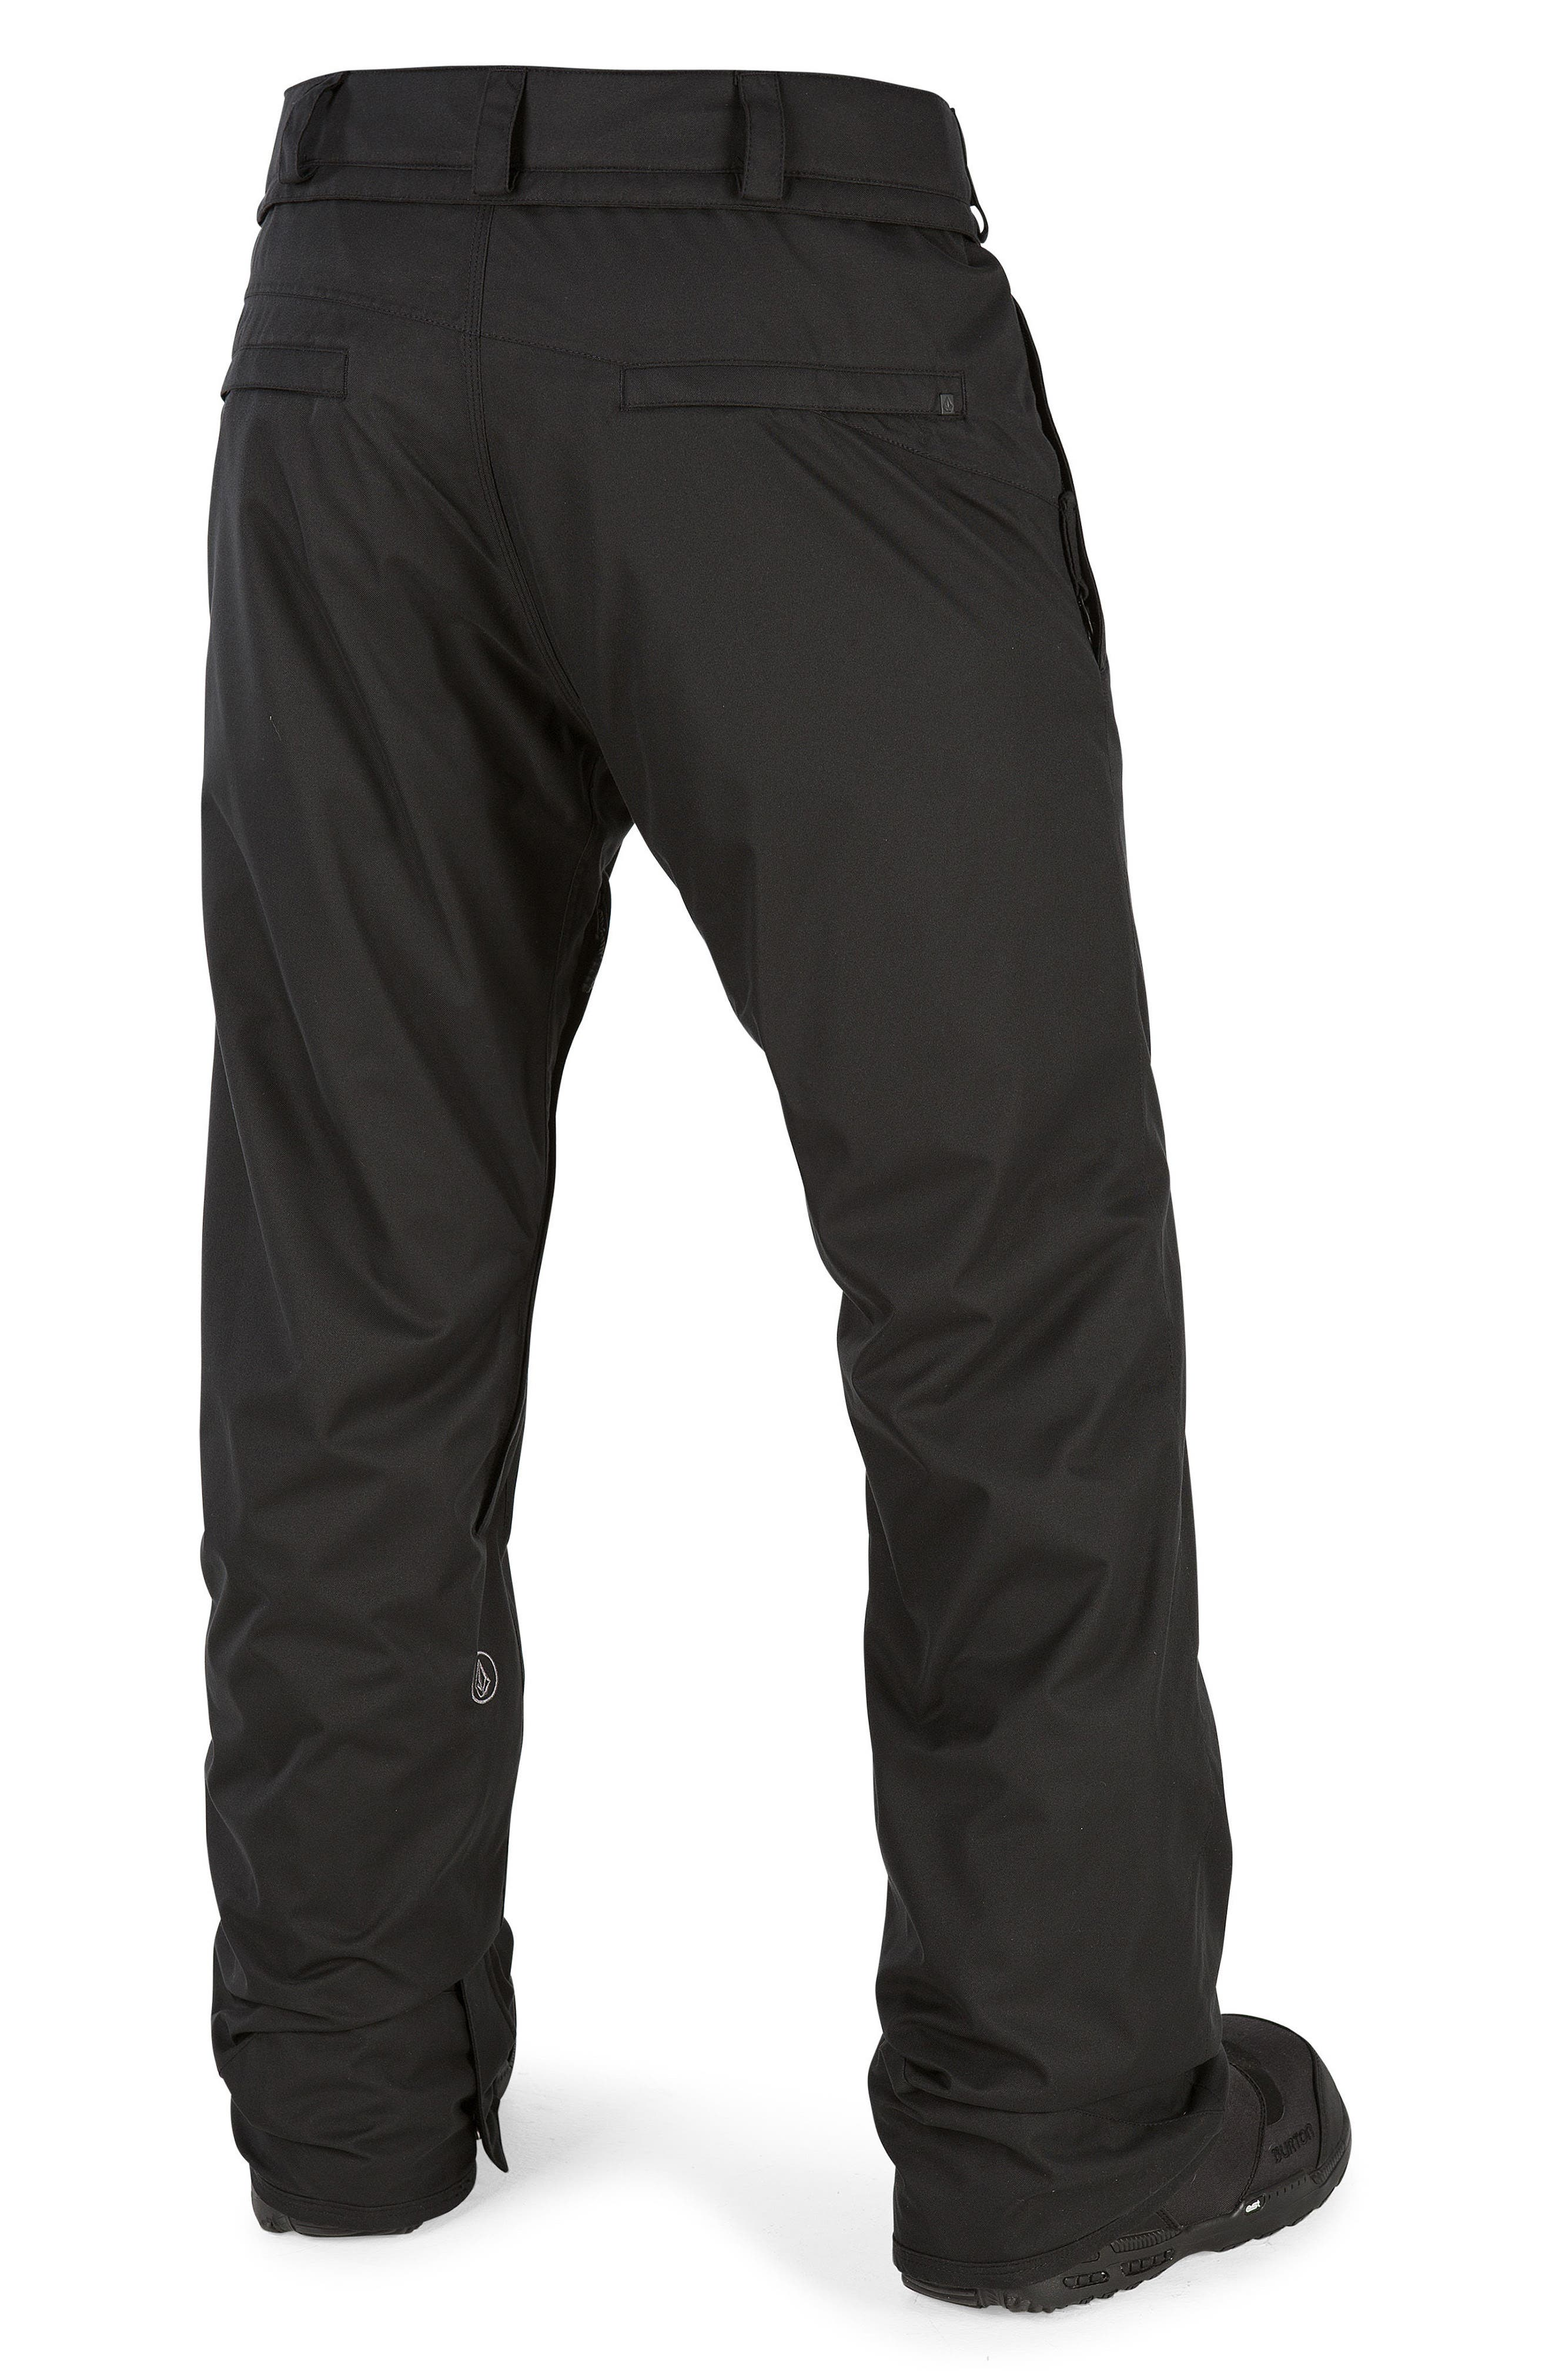 Weatherproof Snow Chino Pants,                             Alternate thumbnail 7, color,                             001